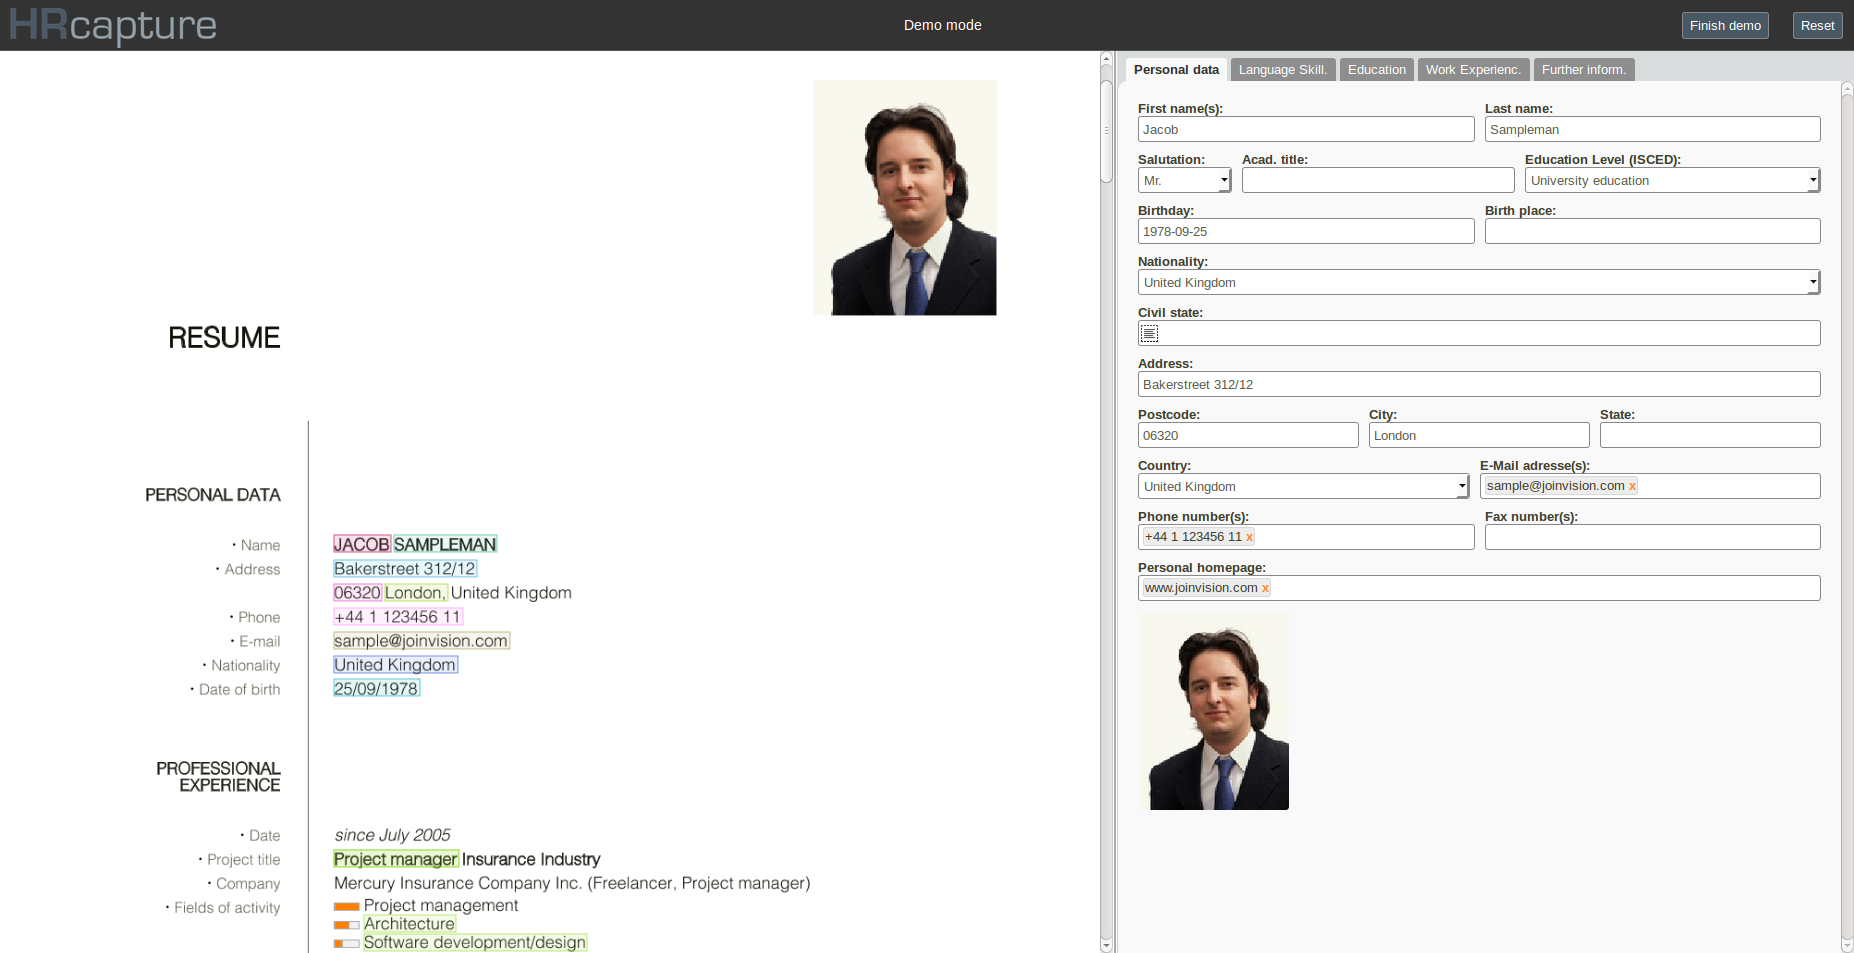 HRcapture screenshot